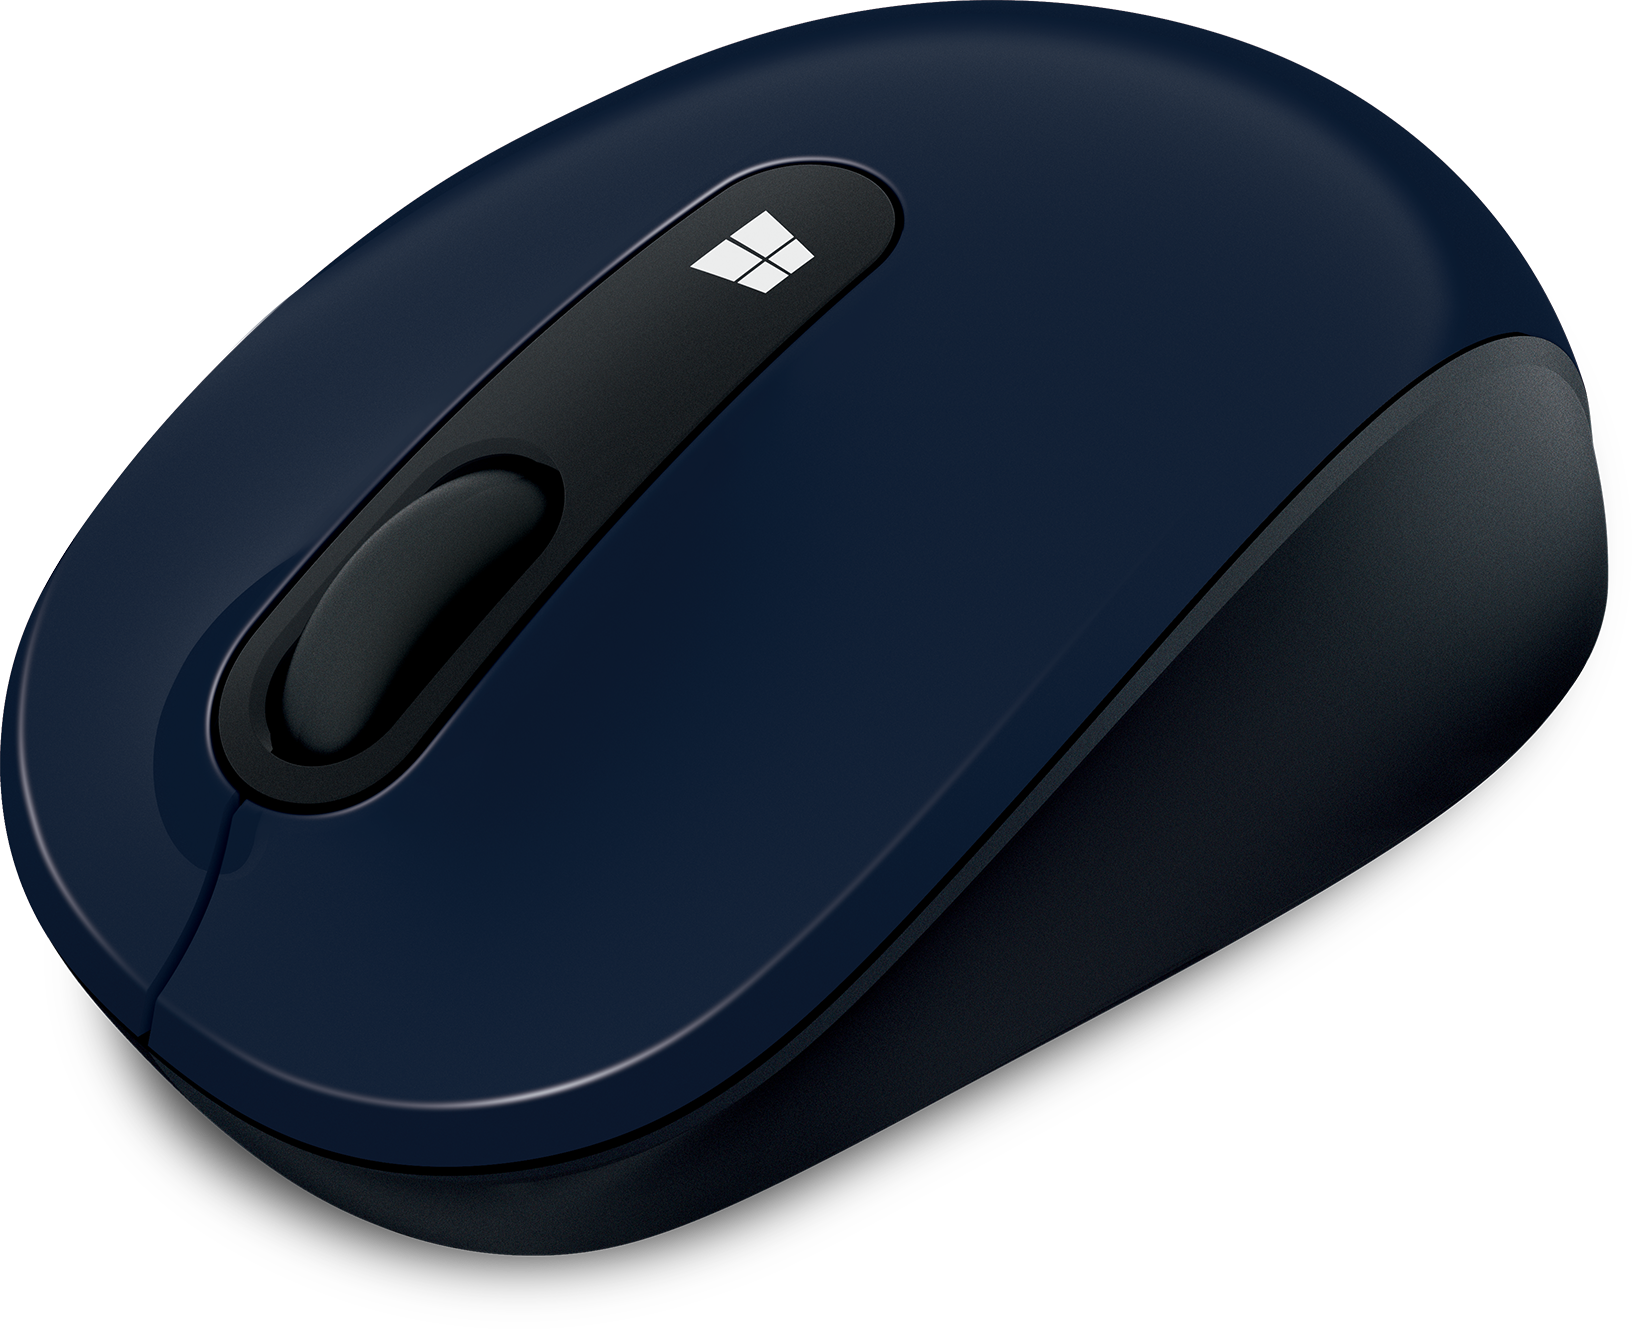 Microsoft Sculpt Mobile Mouse (Wool Blue)